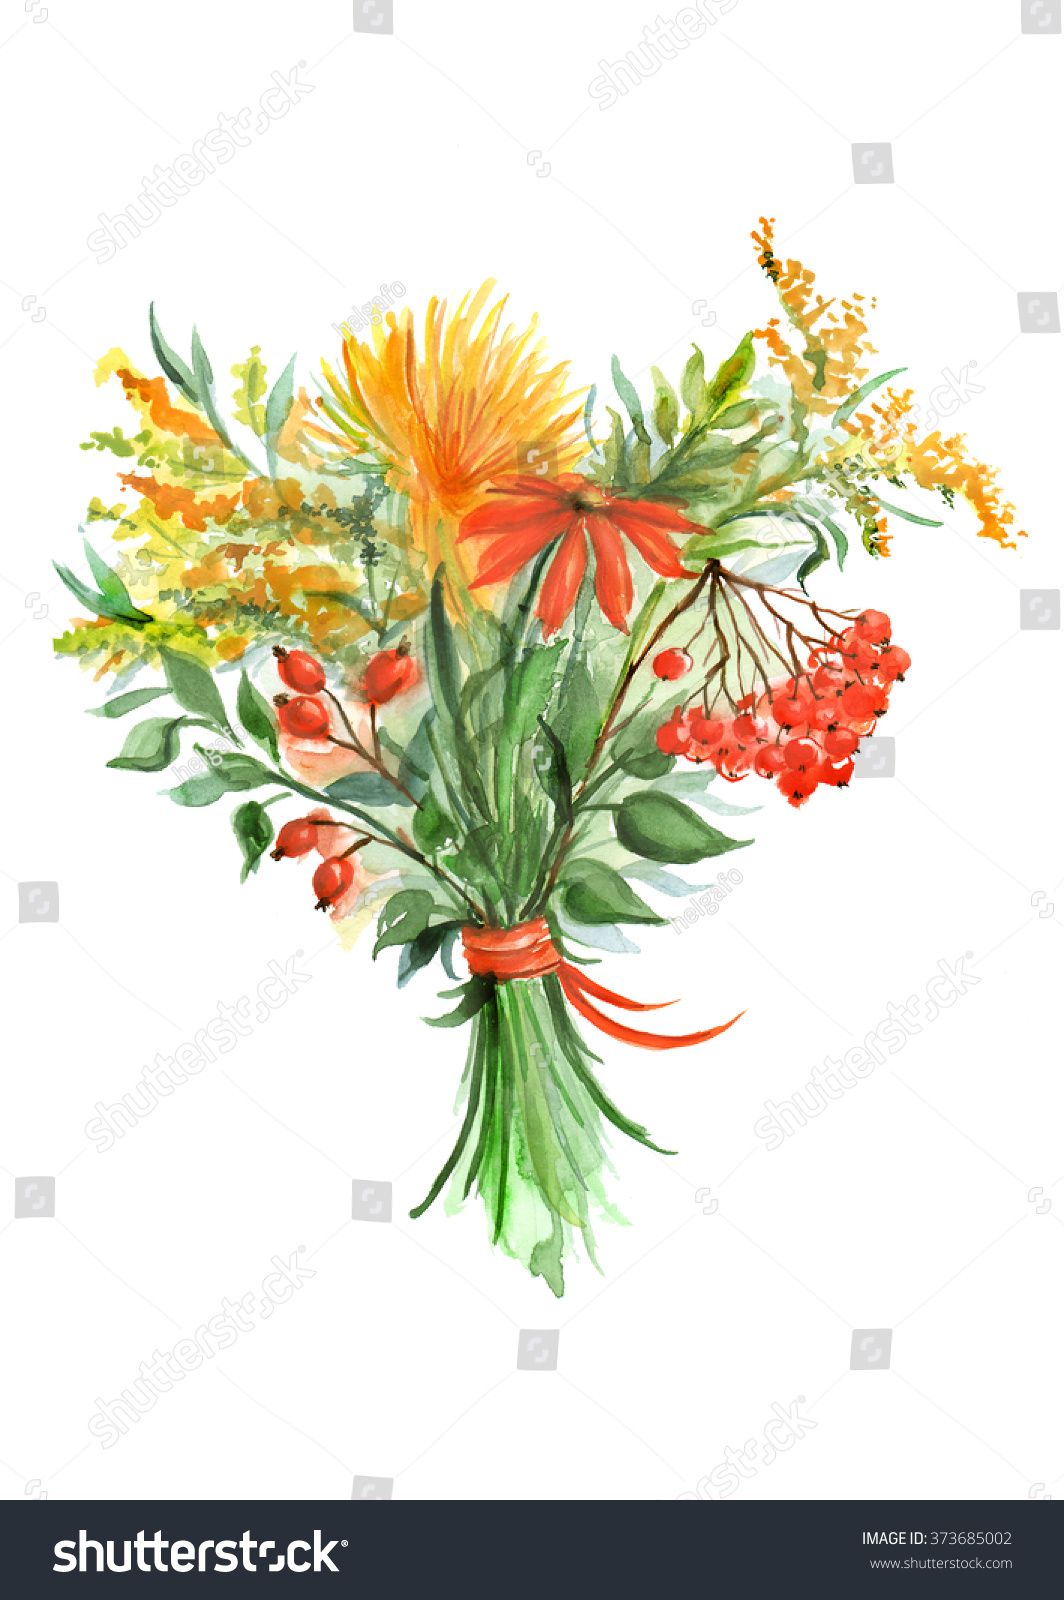 Watercolor Drawing Autumn Bouquet Sunflowers Dogrose Stock Illustration 373685002